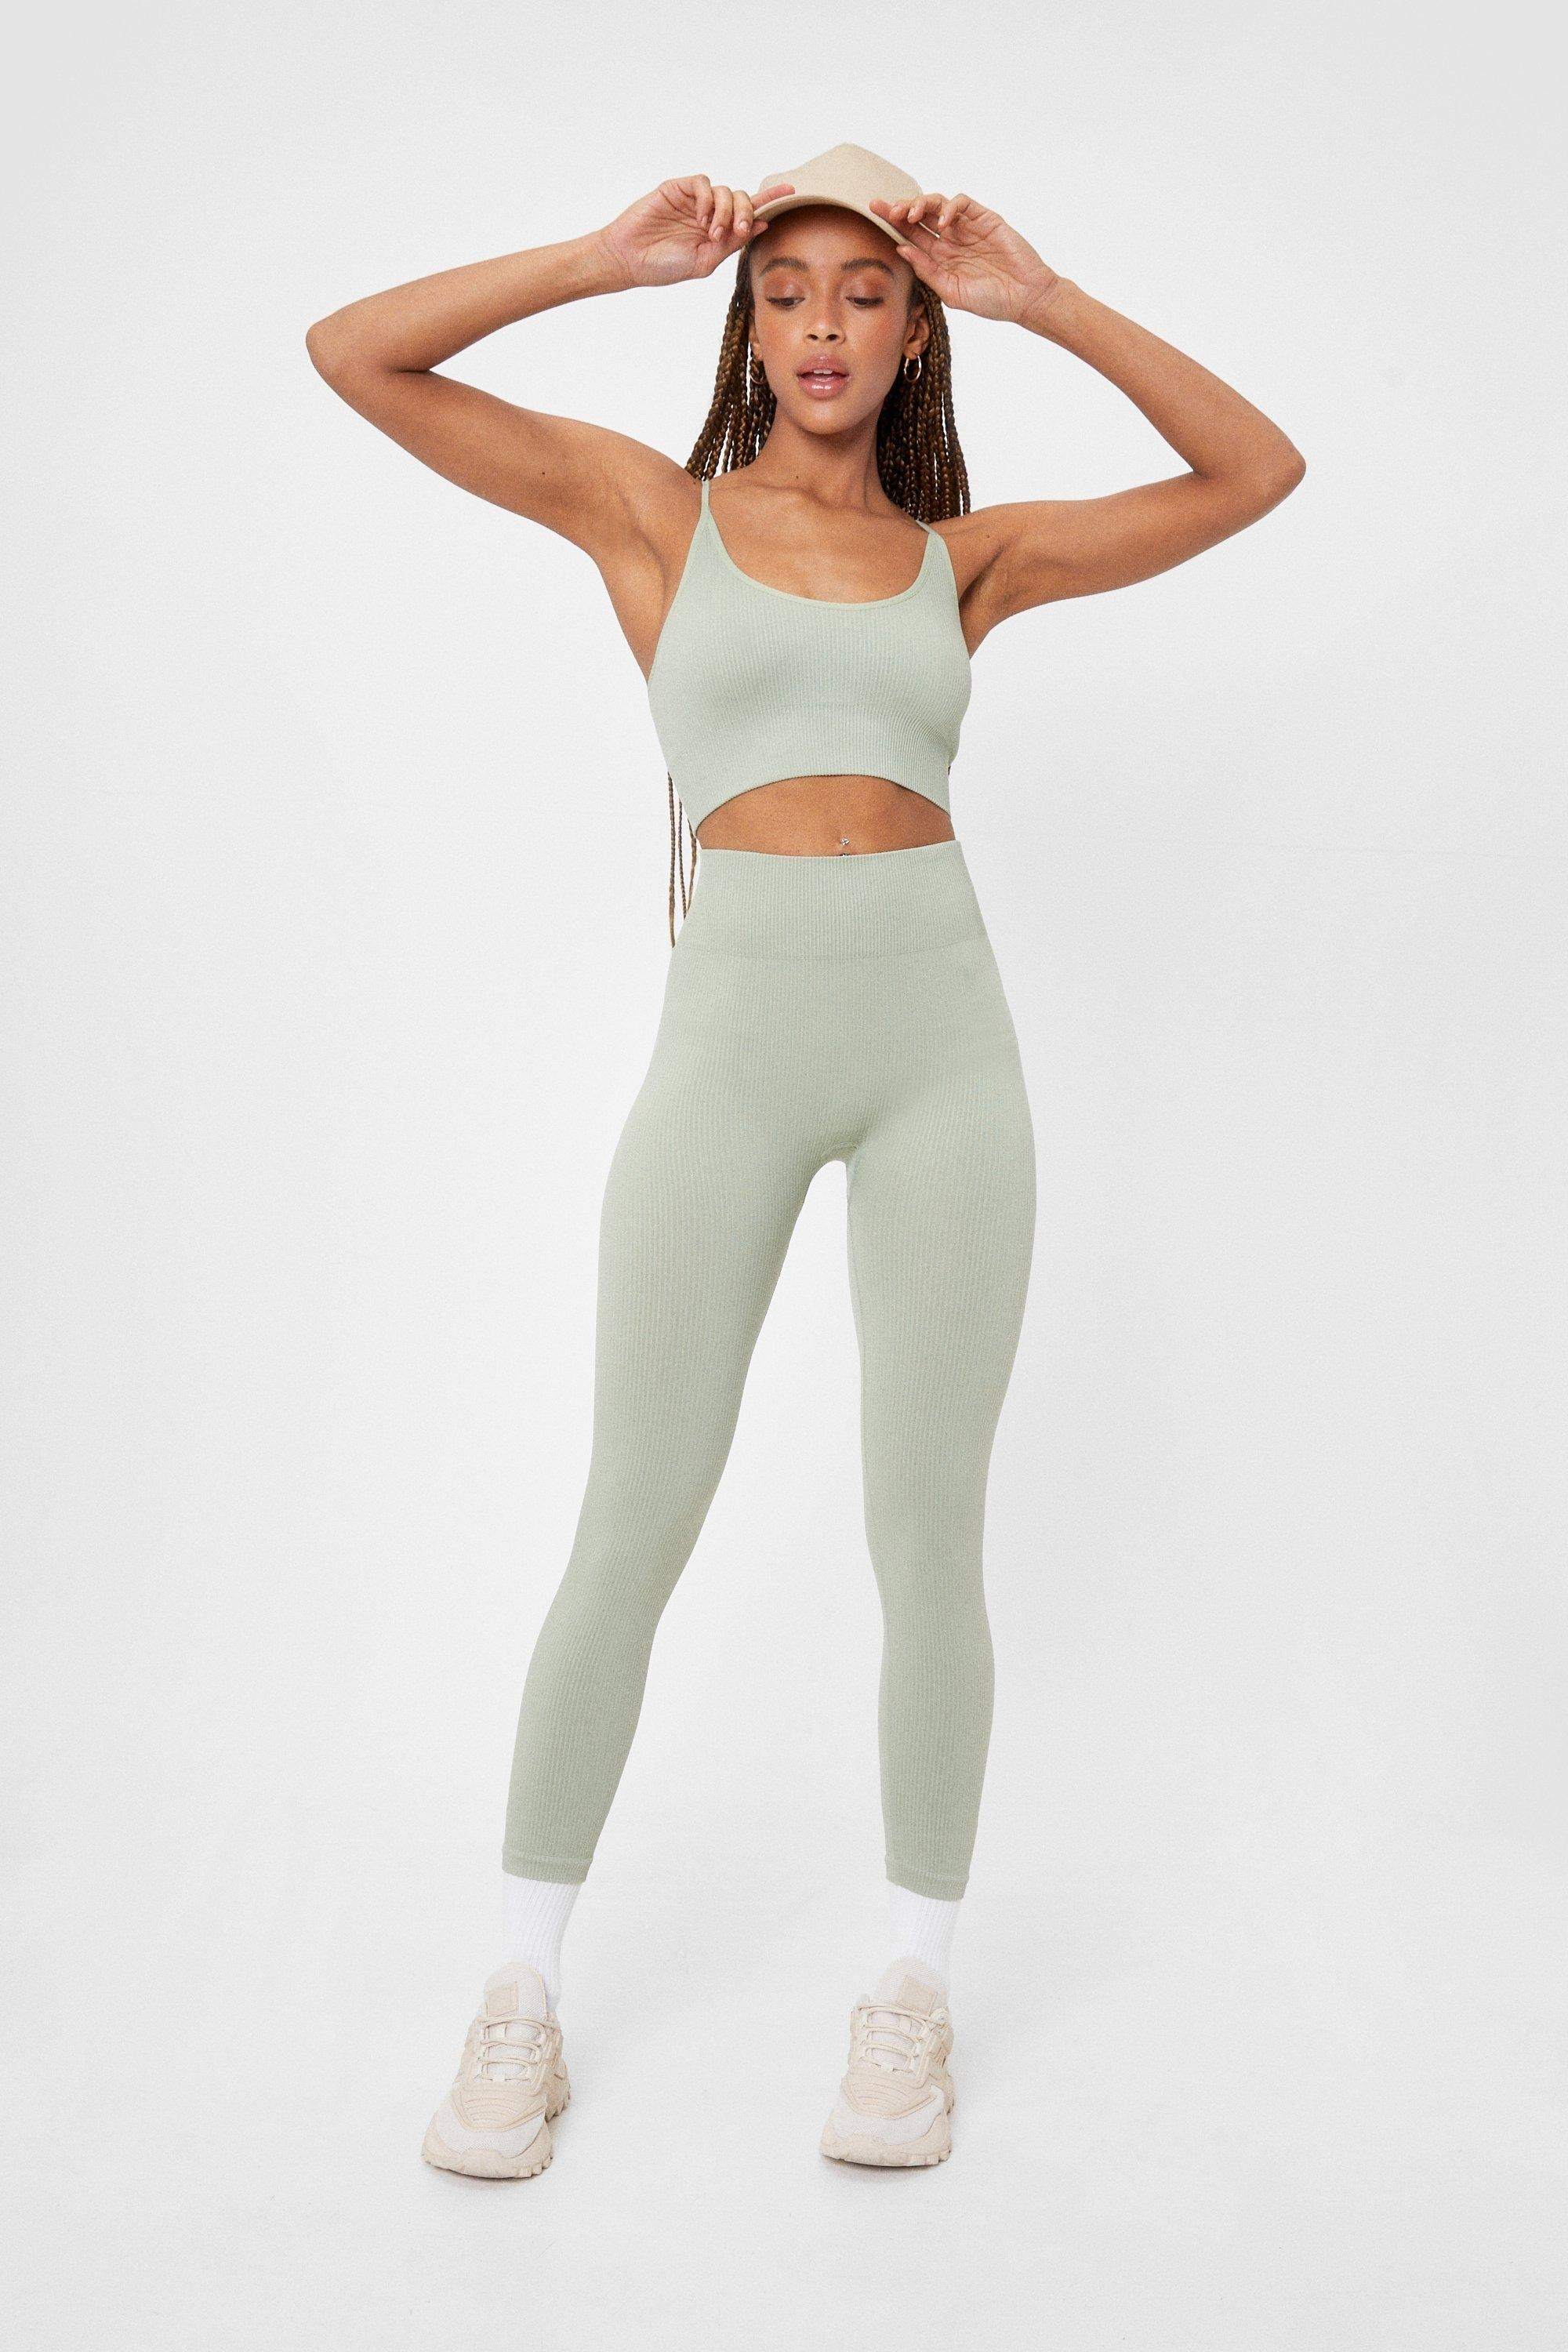 model wearing the light green leggings and sports bra